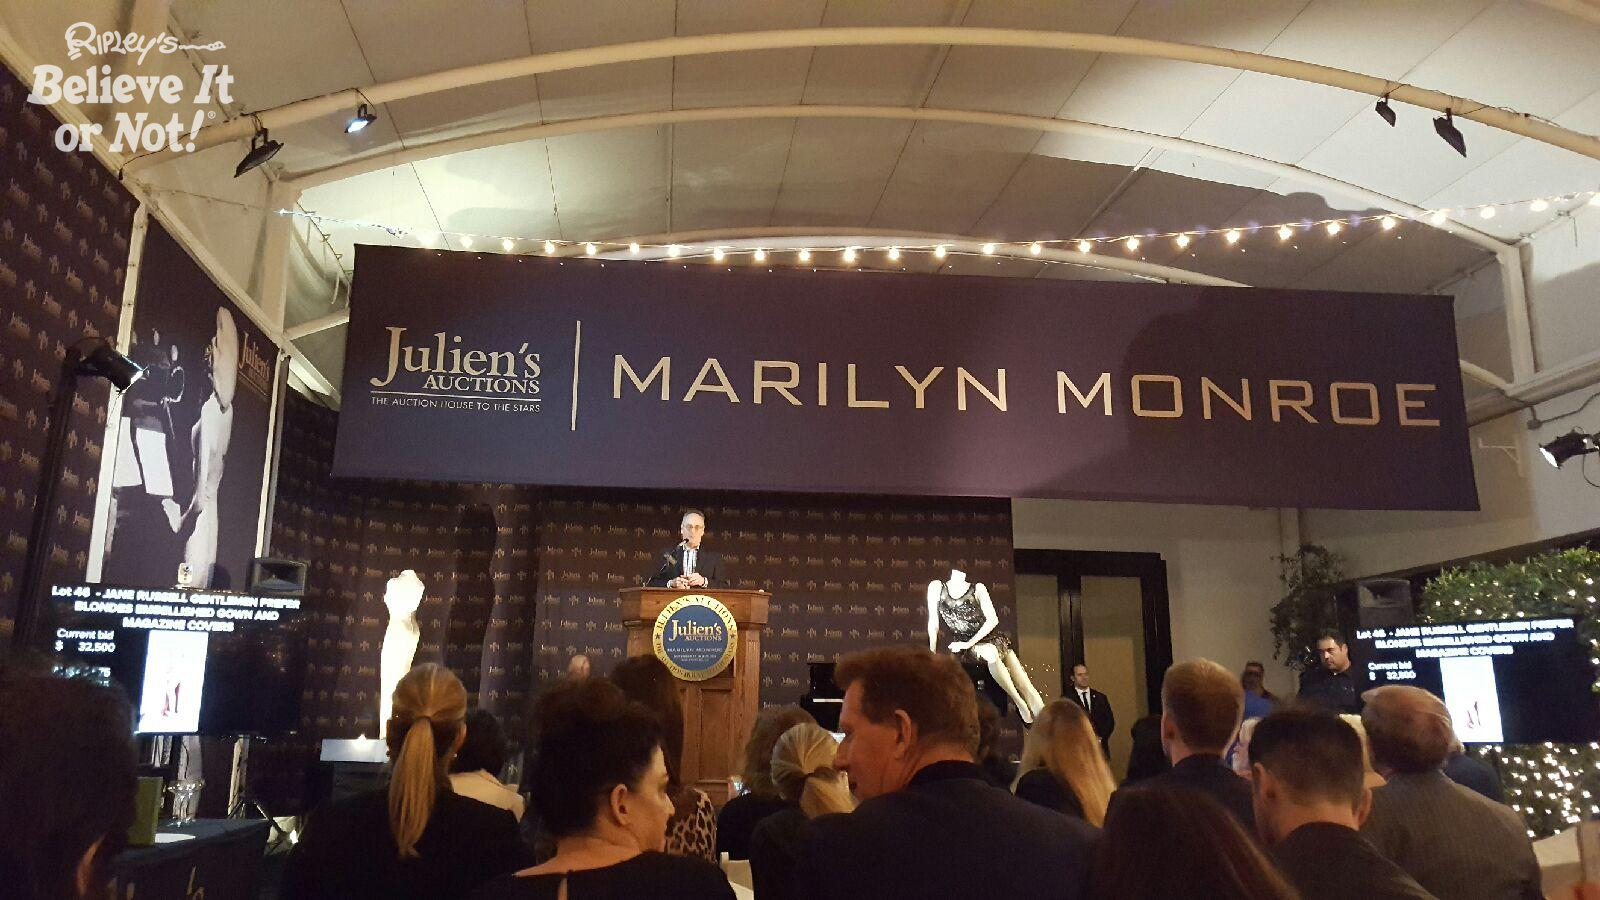 Marilyn Monroe Auction